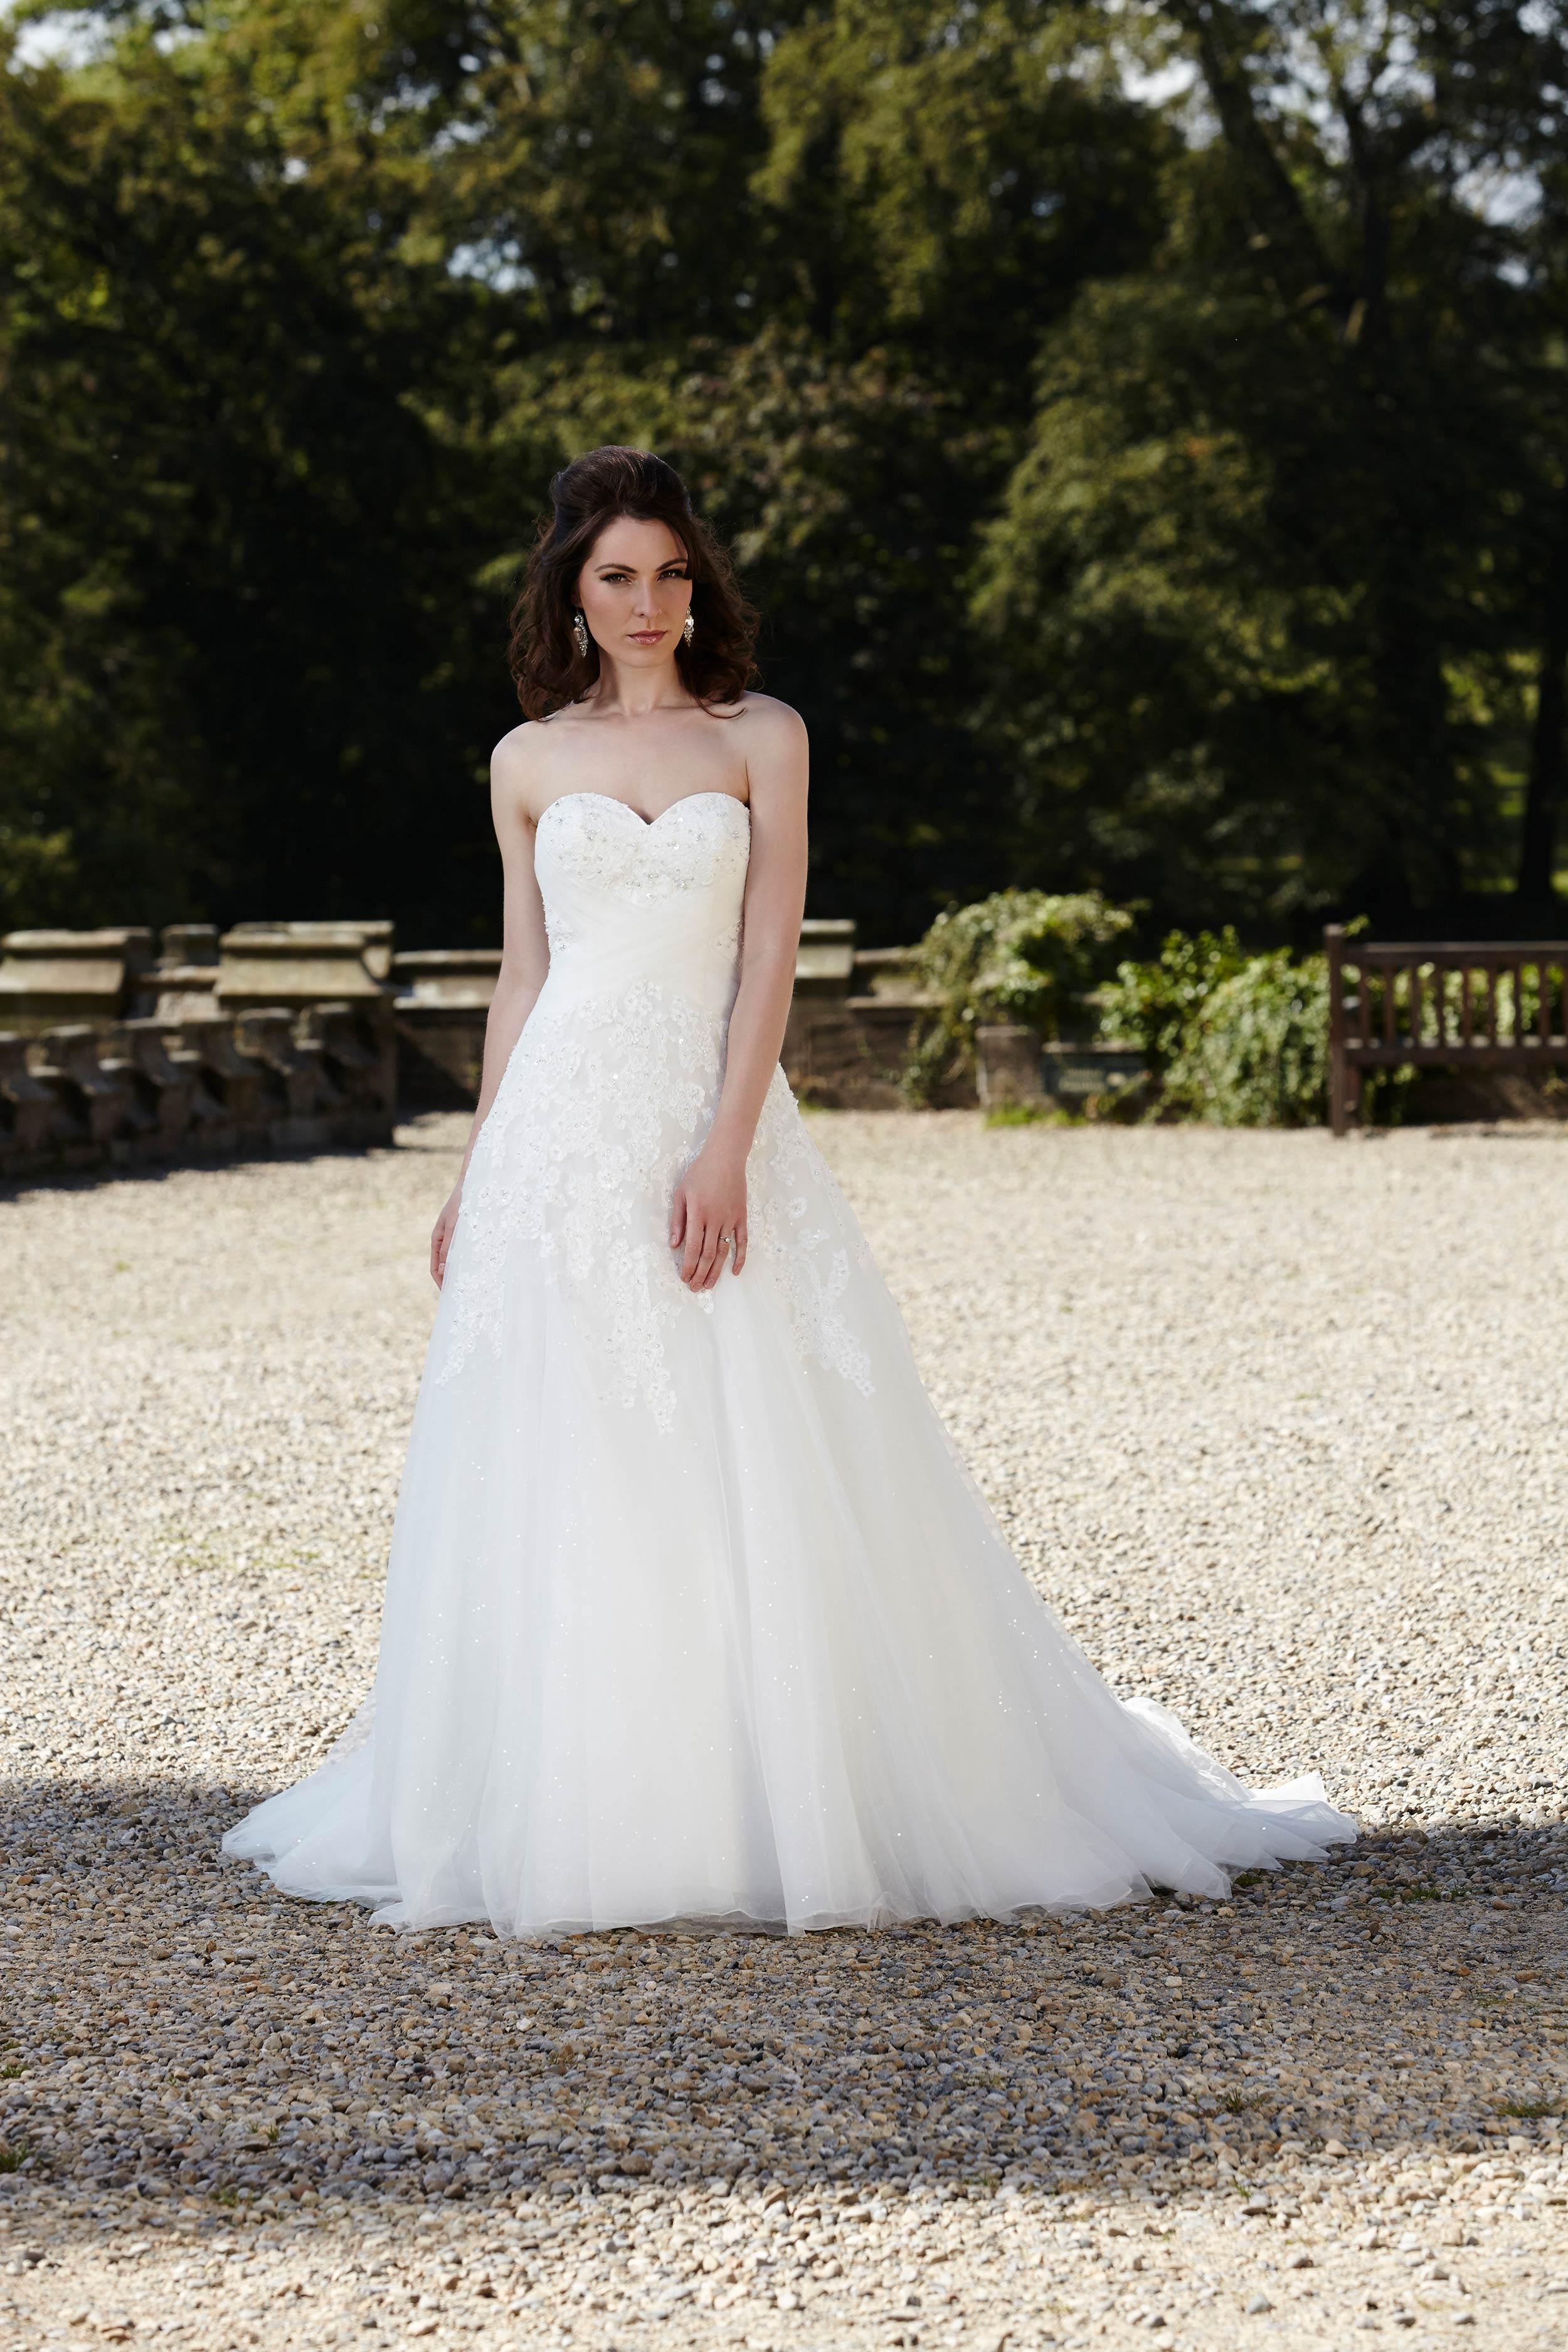 b95c5a27b 7 tips on how to choose your wedding dress - The National Wedding Show